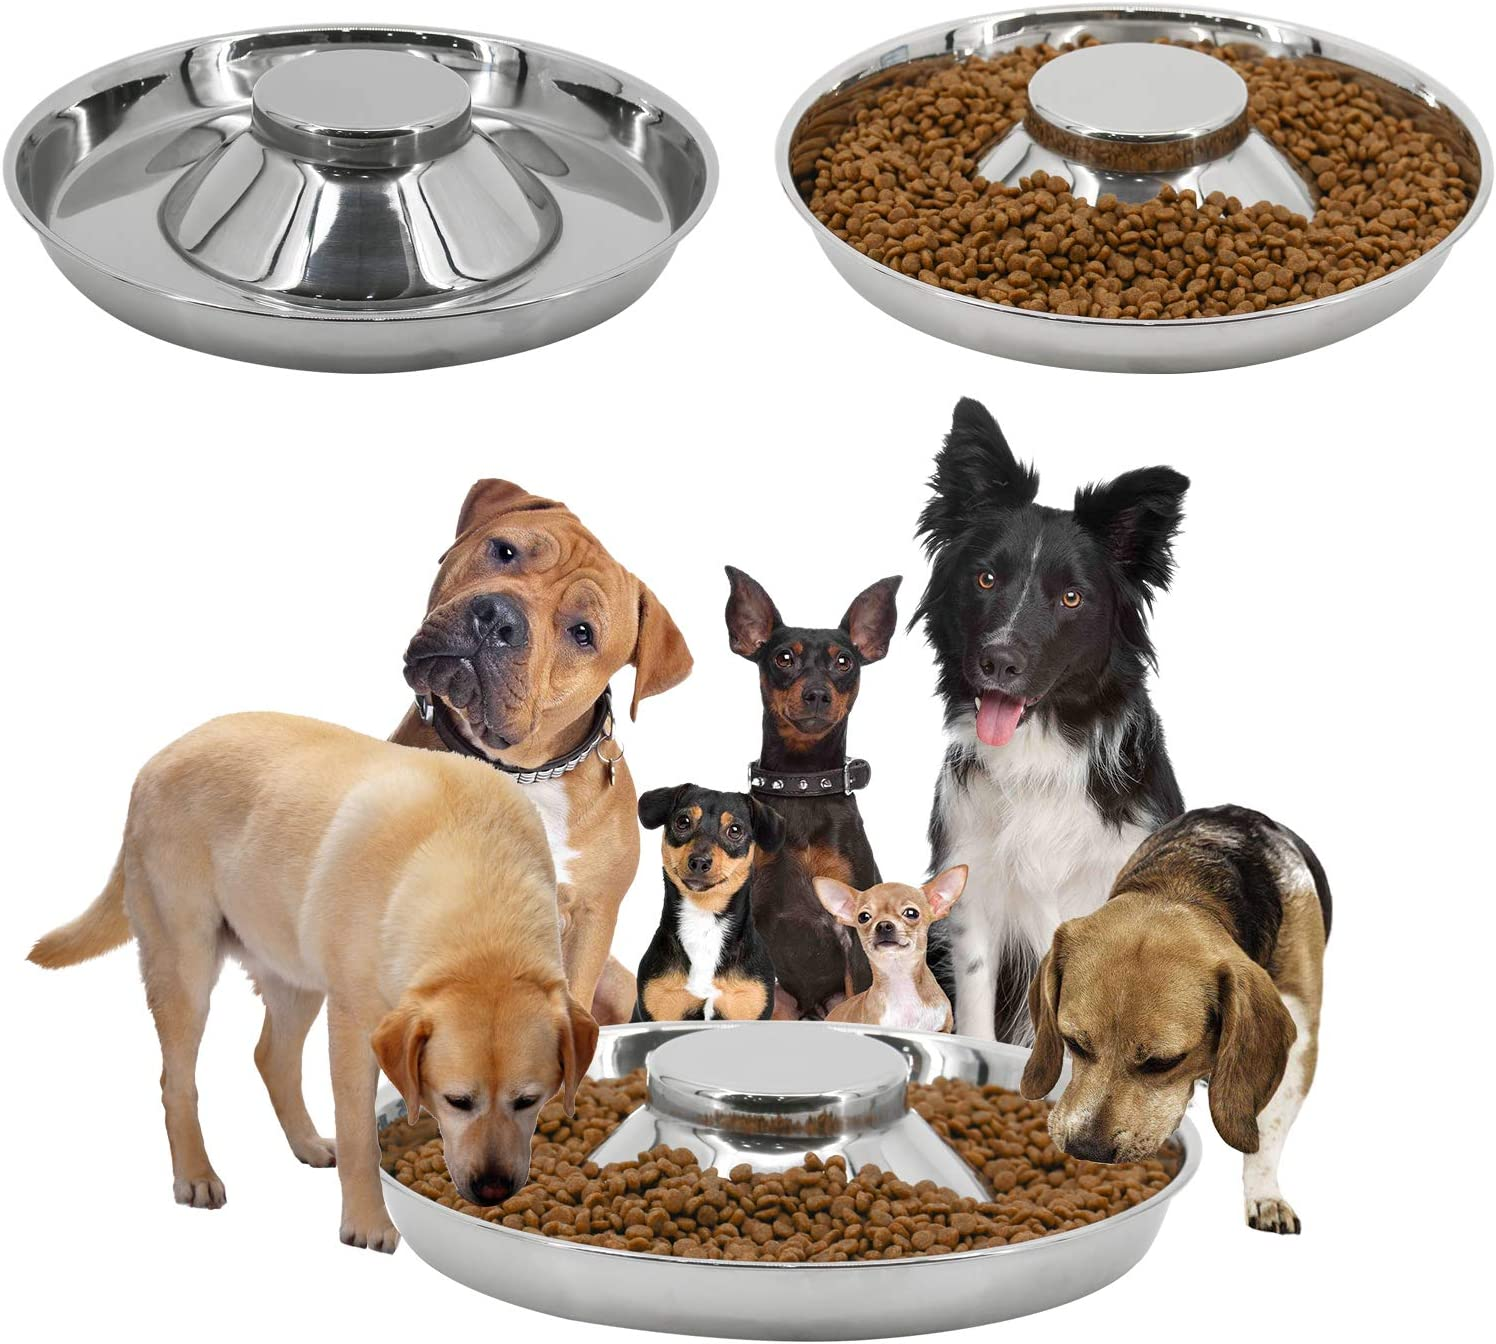 PetierWeit [3 PCS] Dog Food and Water Bowl with Raised Center Stainless Steel Diameter:11.4in/29 cm - Suitable for Small/Medium/Large Dogs